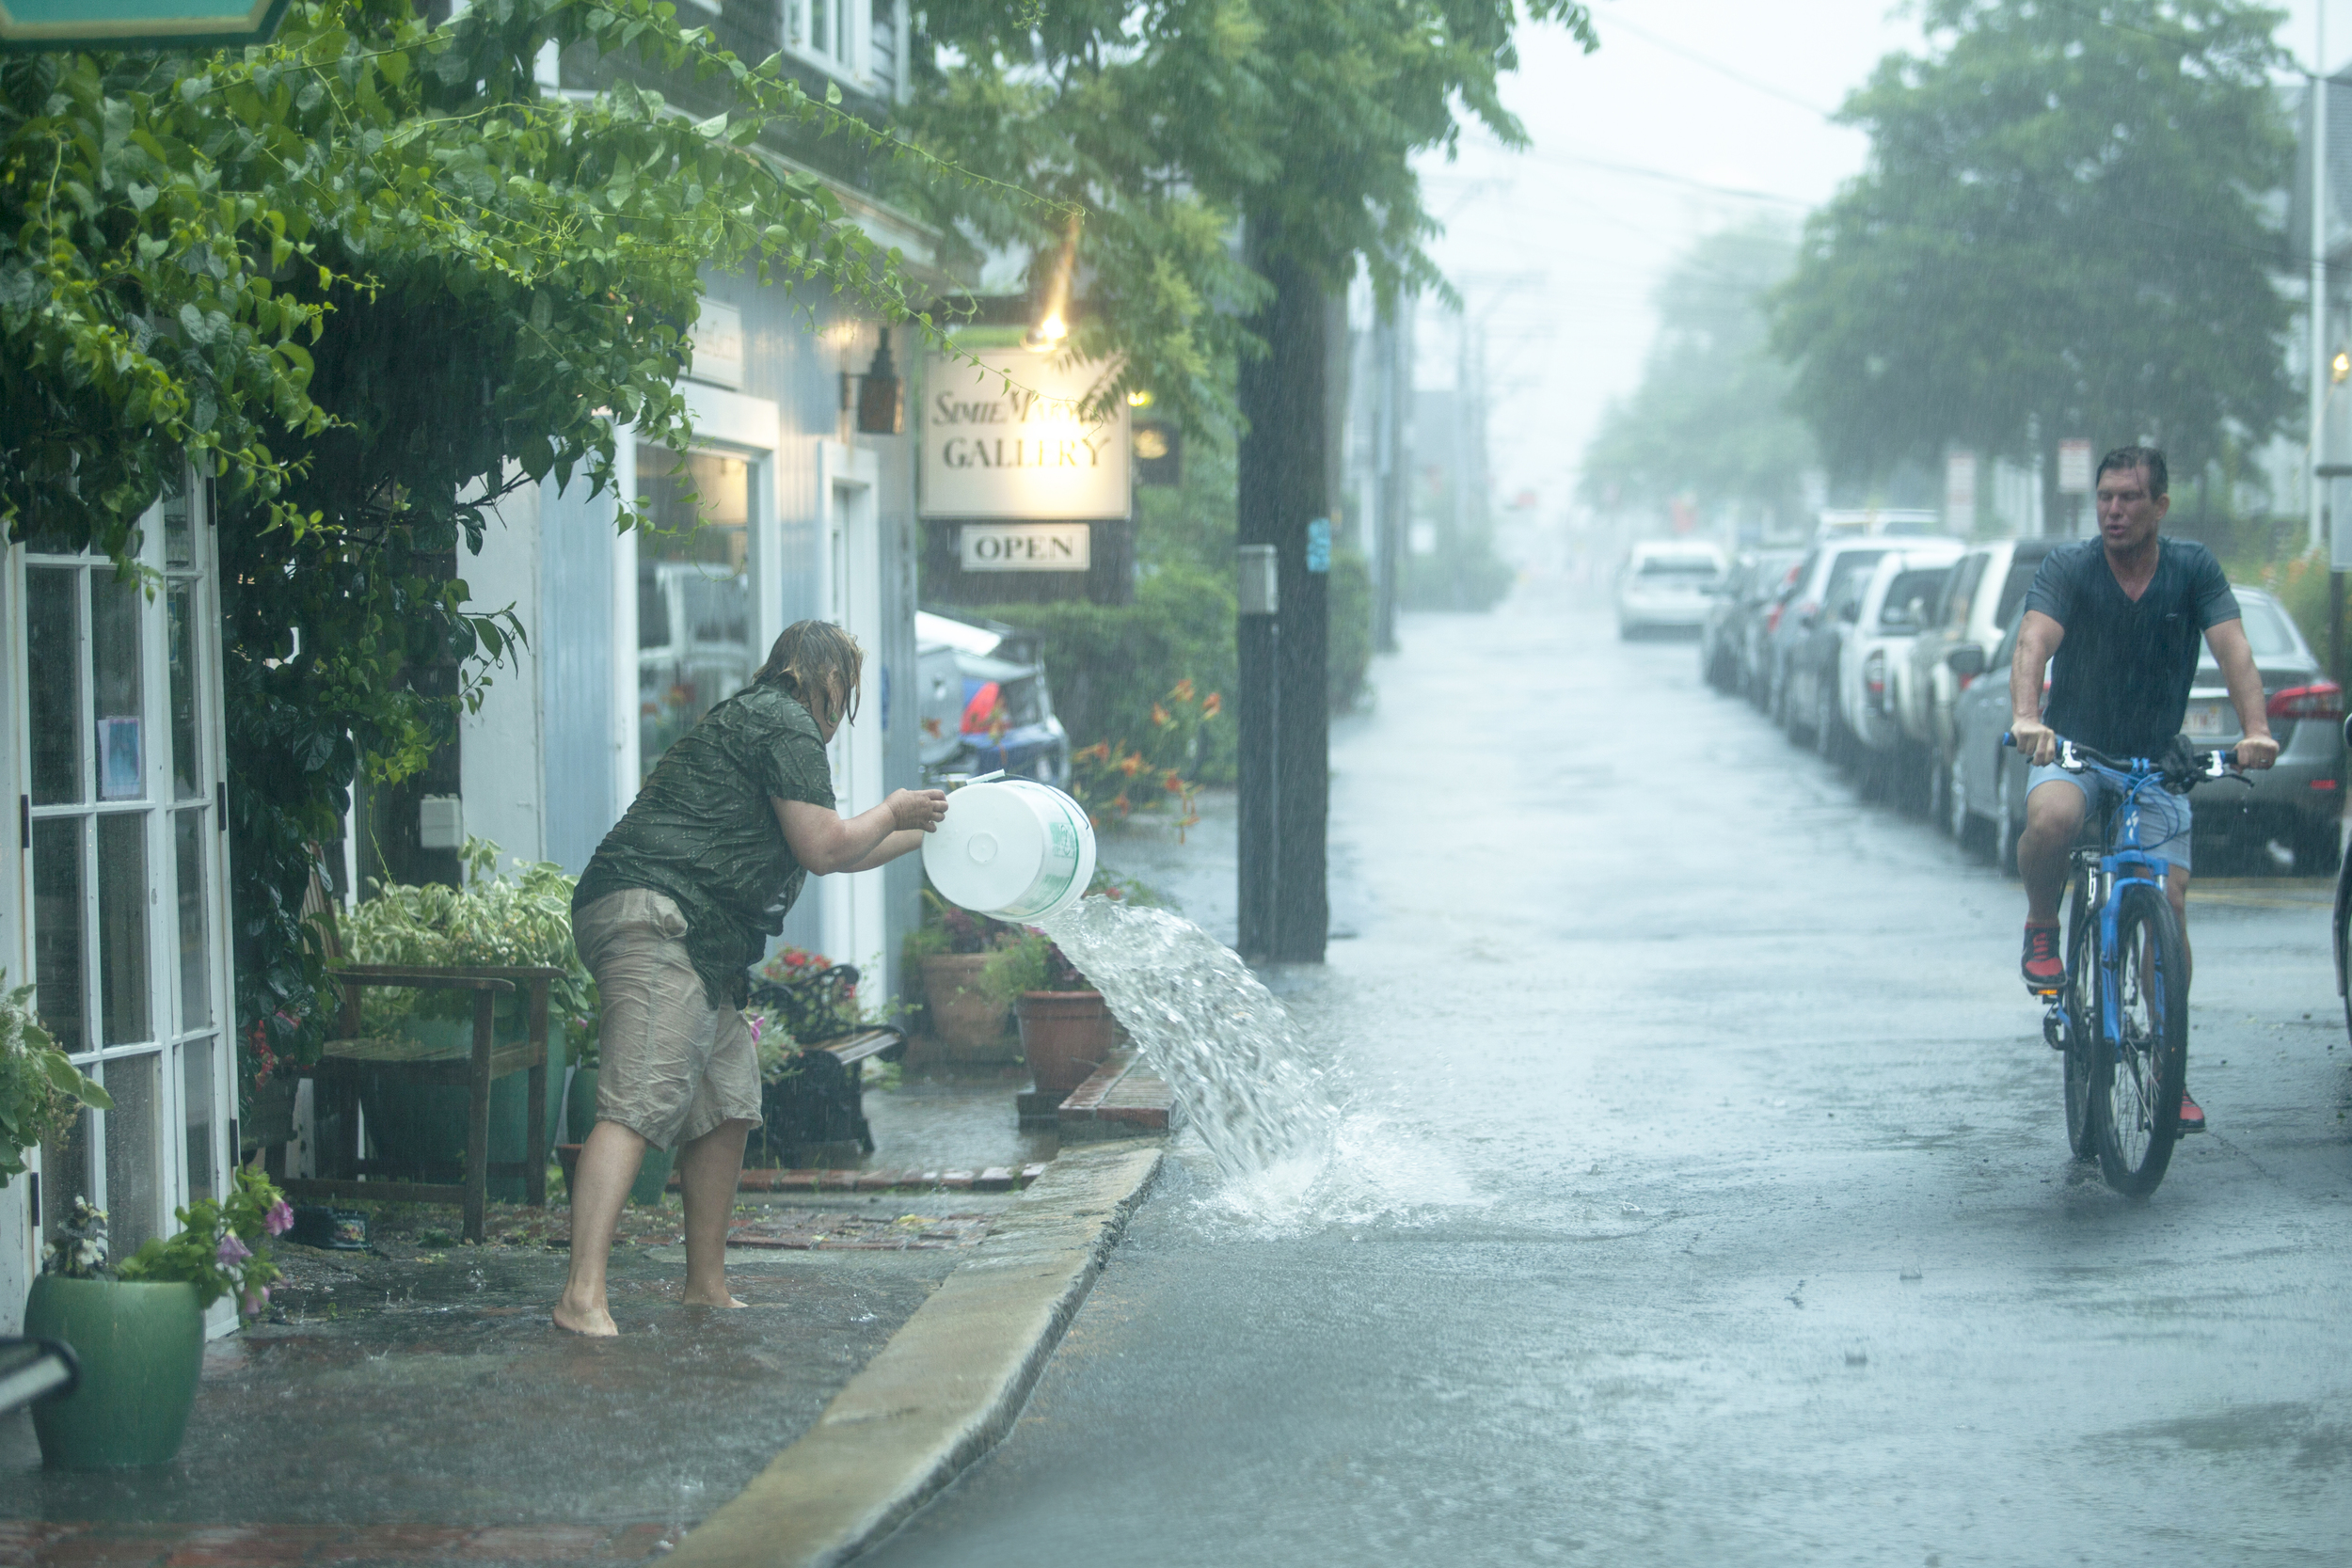 Gallery owner uses bucket to clear water that was flooding her store front as man on a bike passes by.